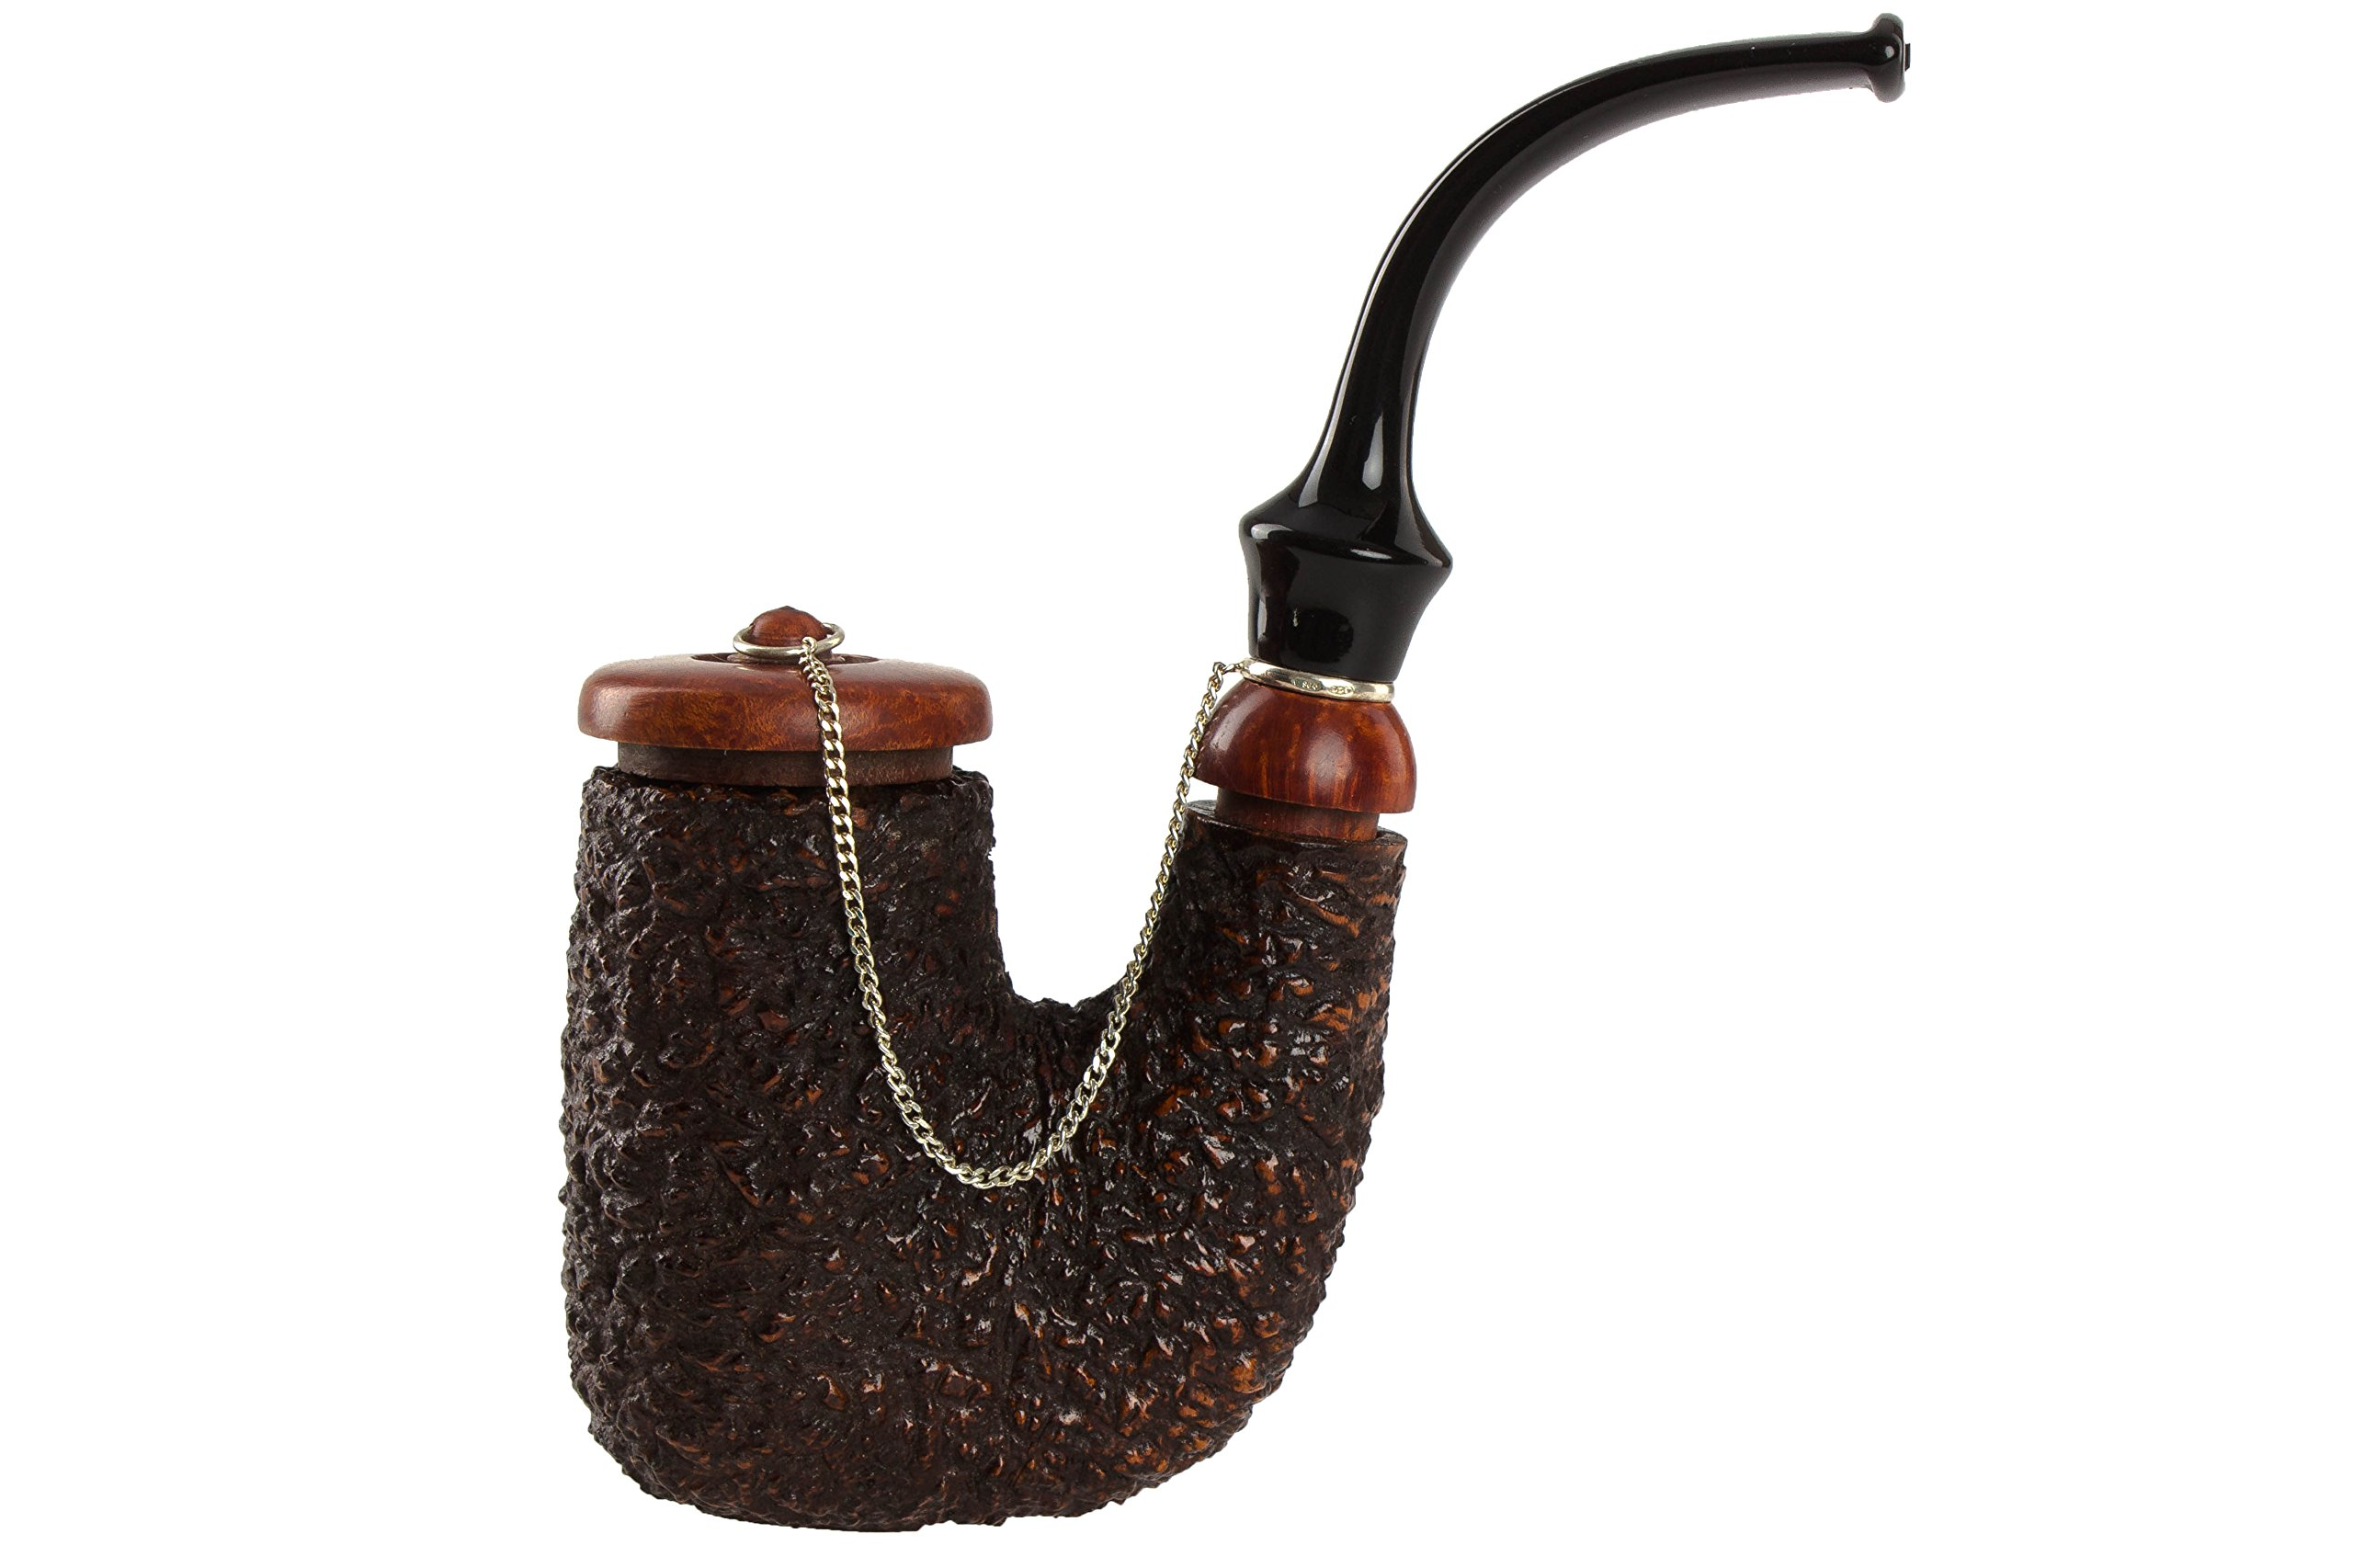 Brebbia Oom-Paul With Cap Tobacco Pipe - Rustic